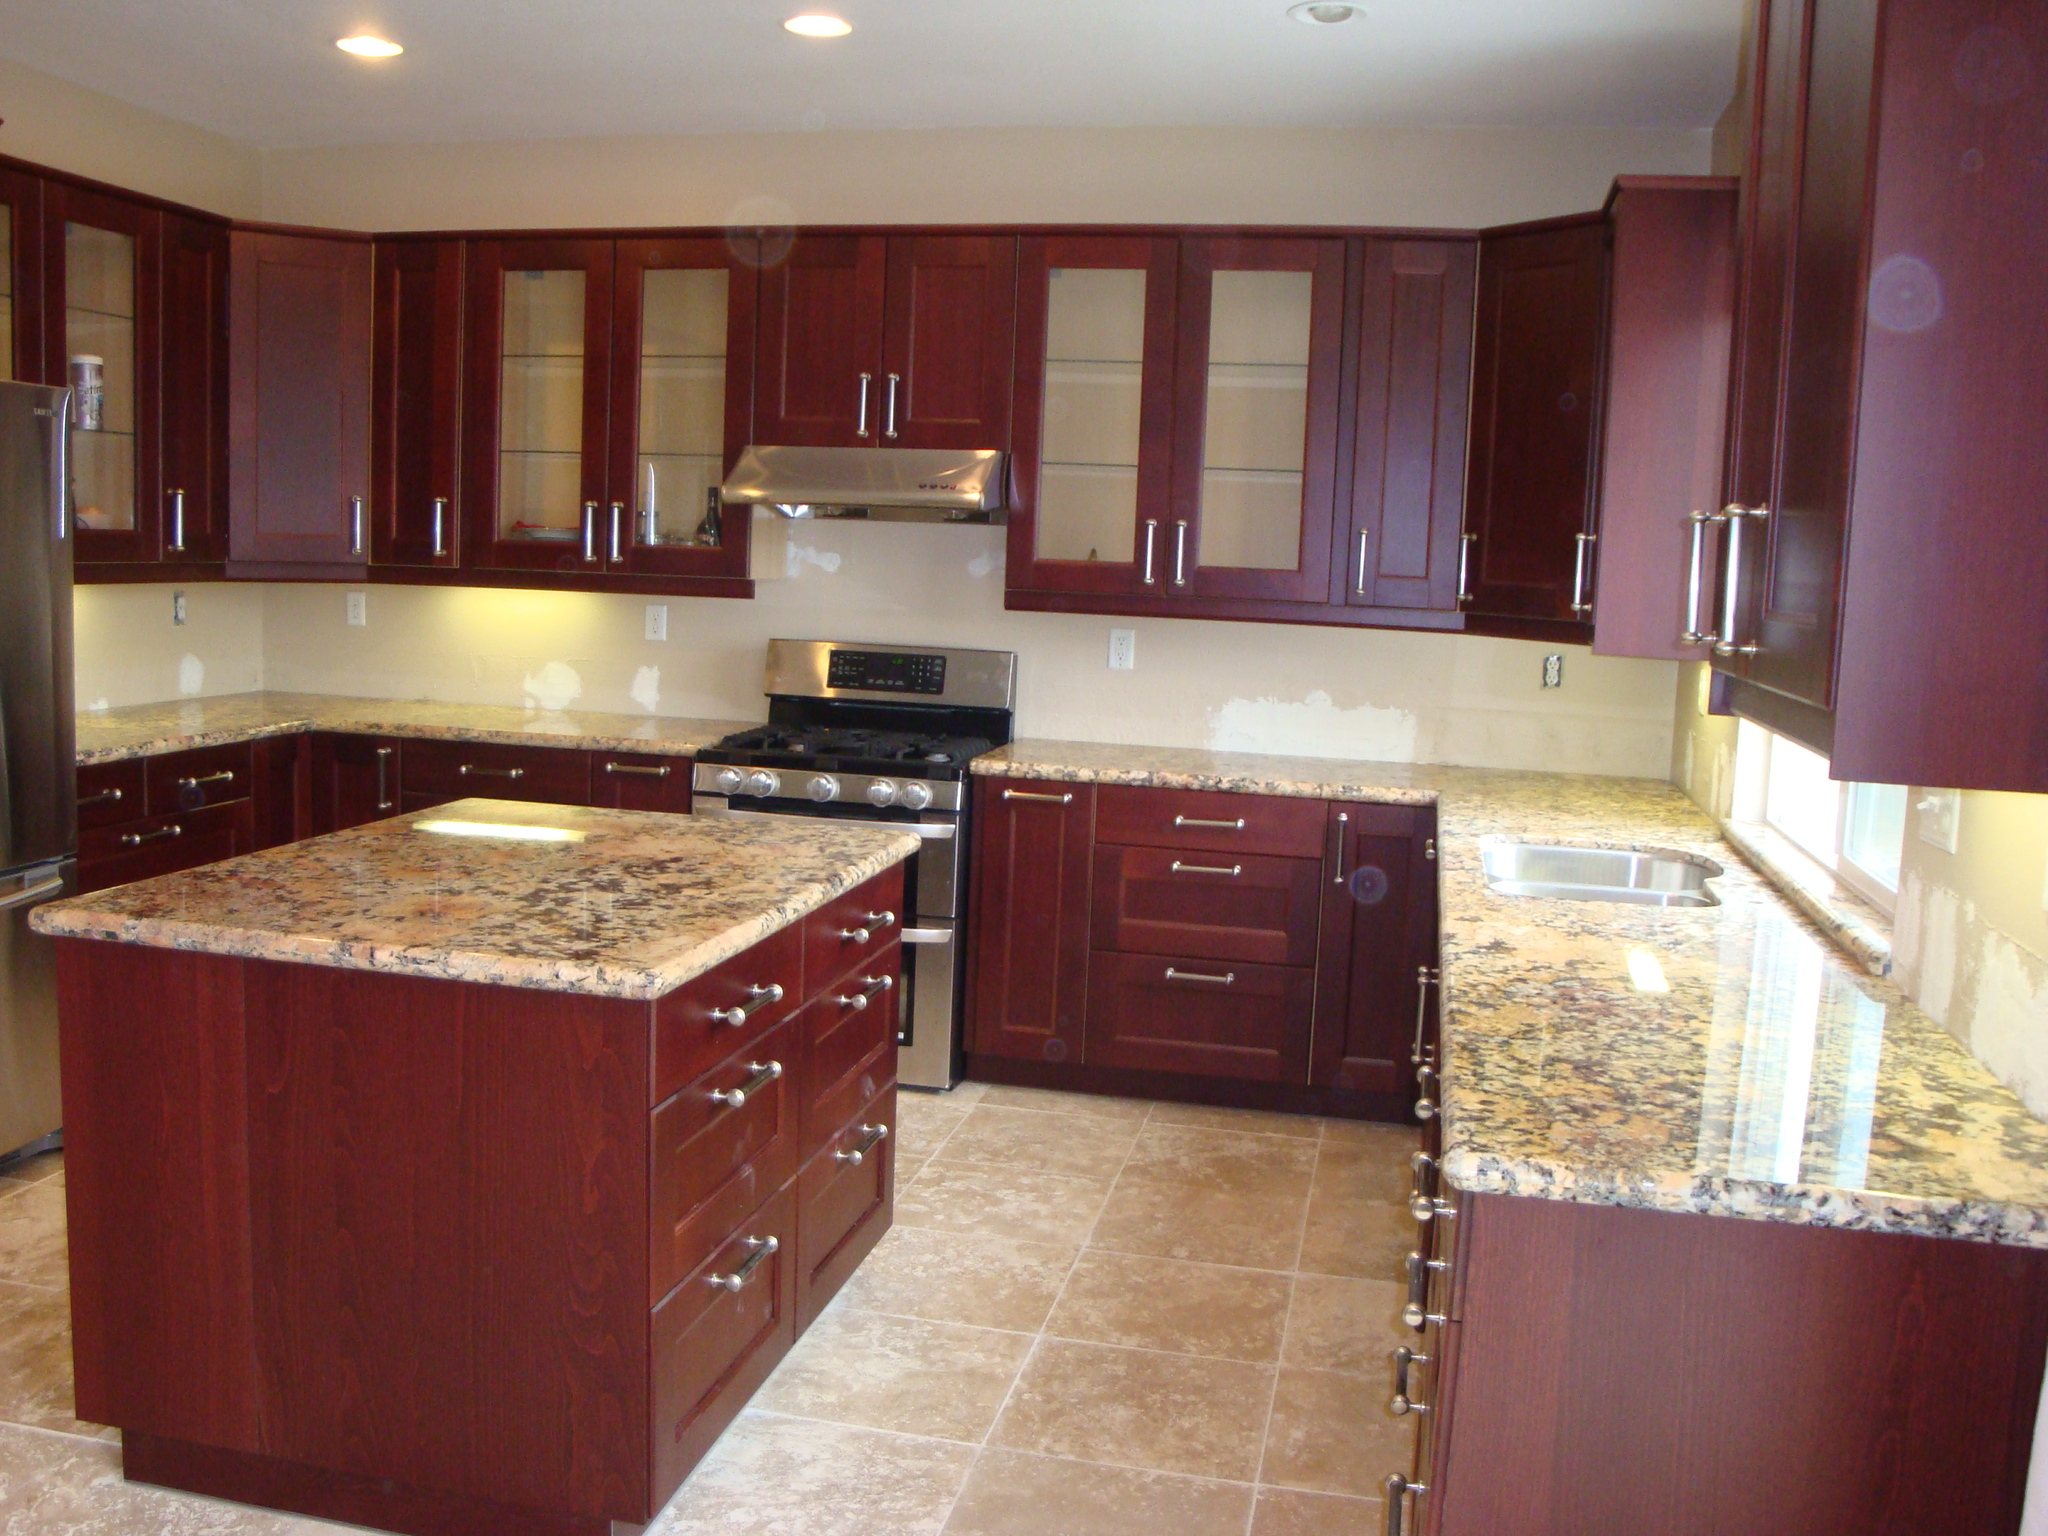 Nice Diamond Flower Granite Counter Tops U0026 Cherry Shaker Cabinets | Santa Clarita